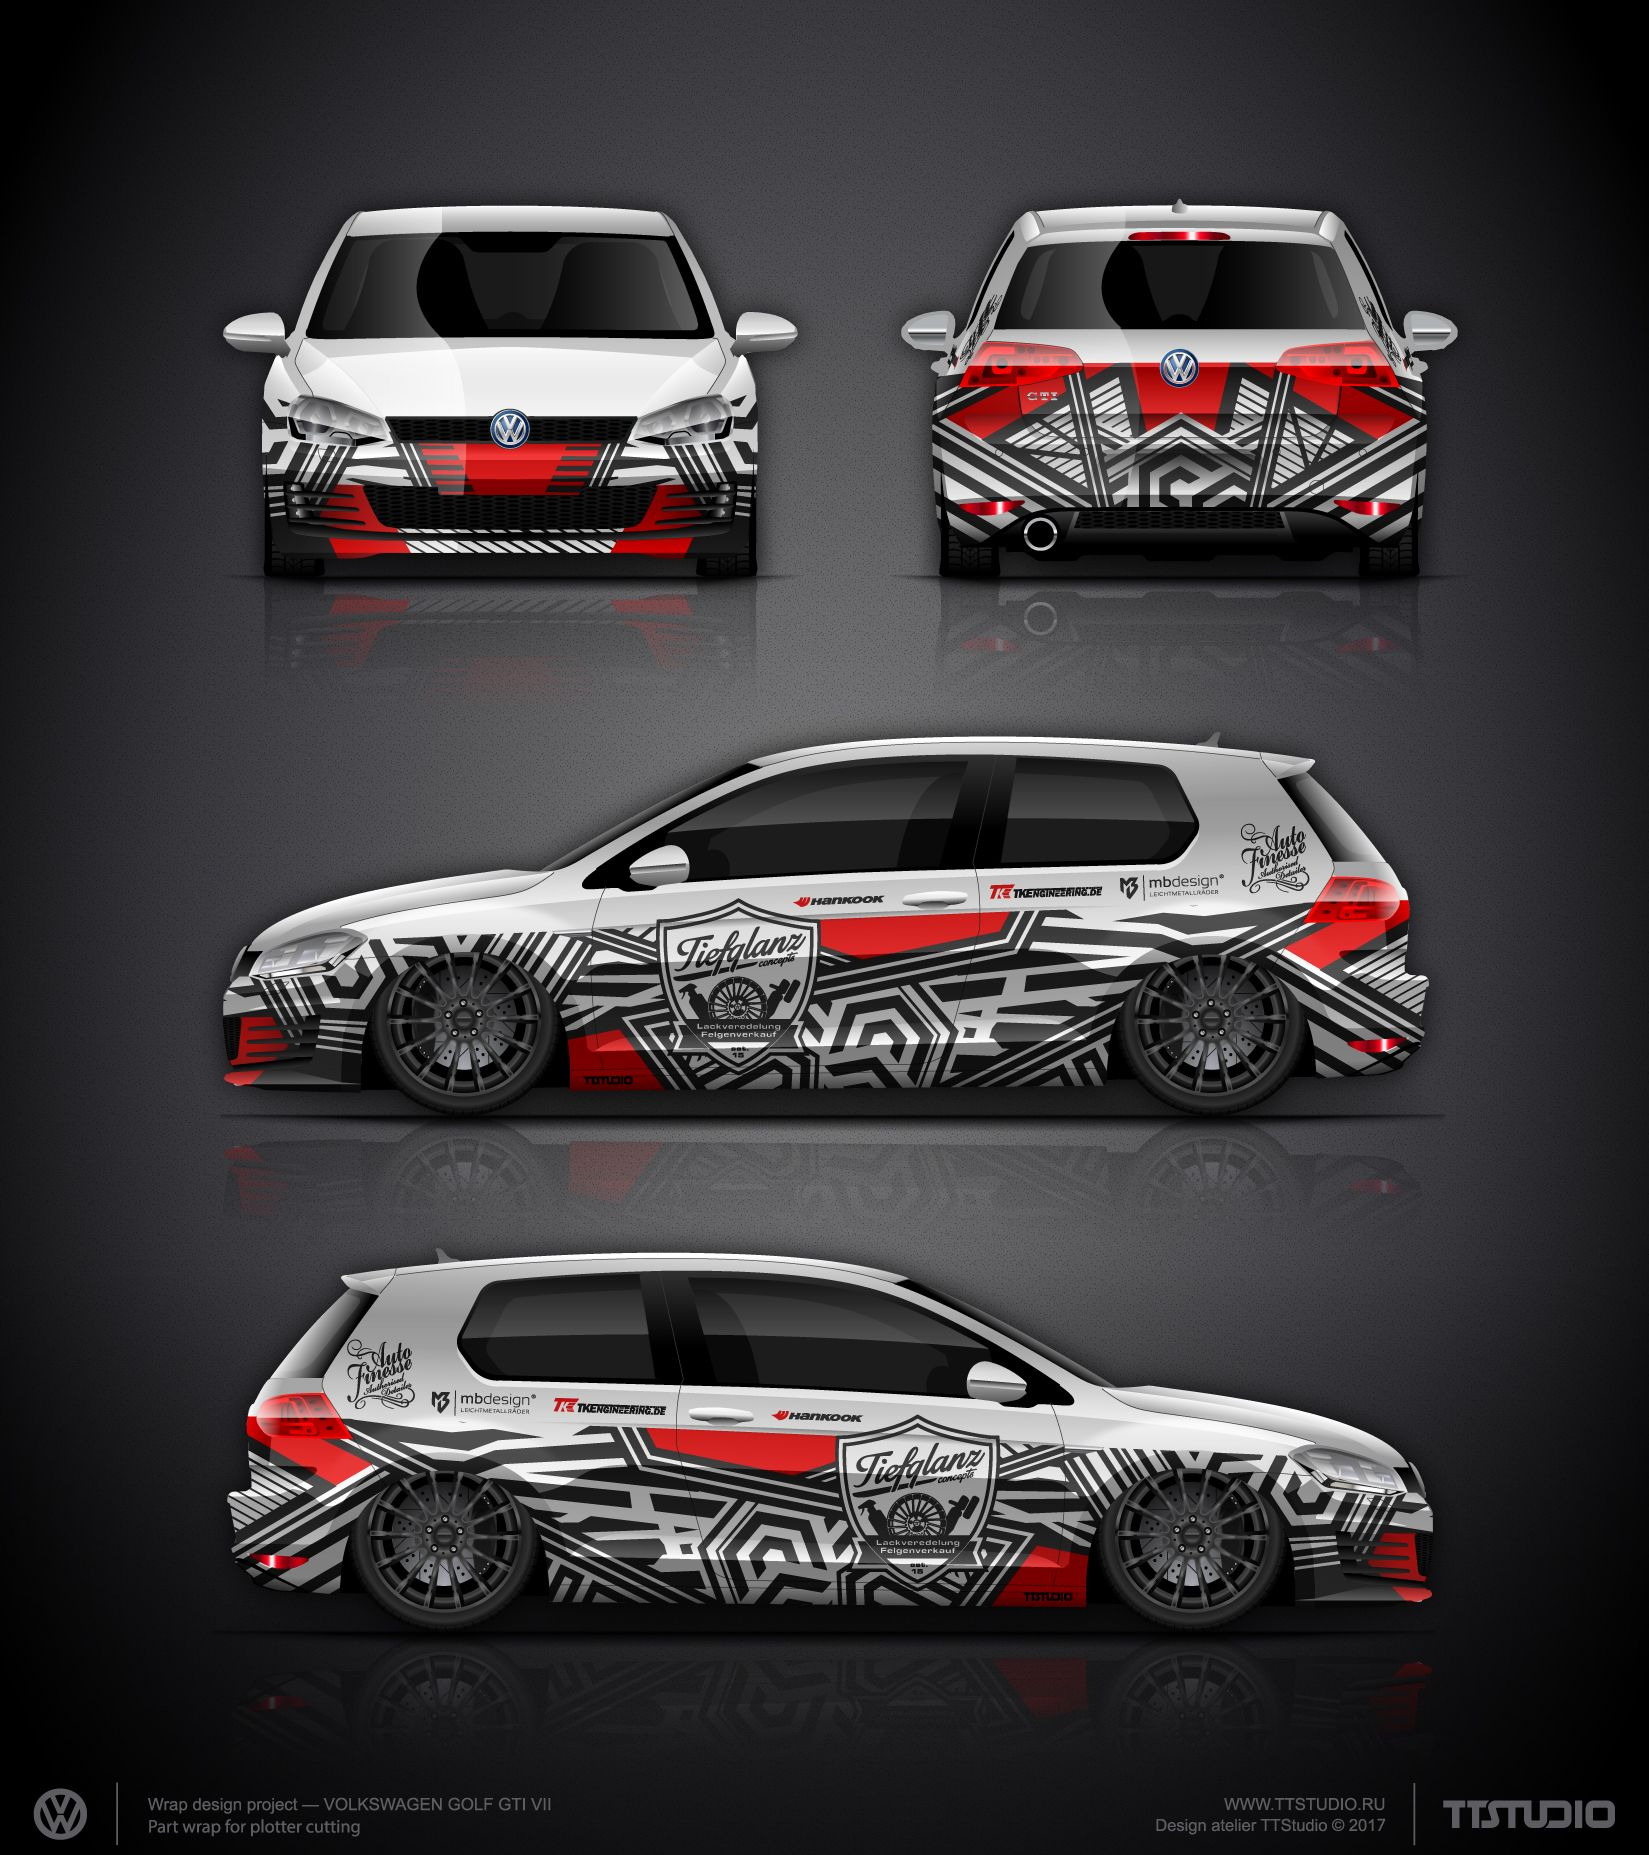 The Approved Tiefglanz Concepts Part Wrap Design Project For Golf - Racing car decals designpng race car wraps pinterest cars